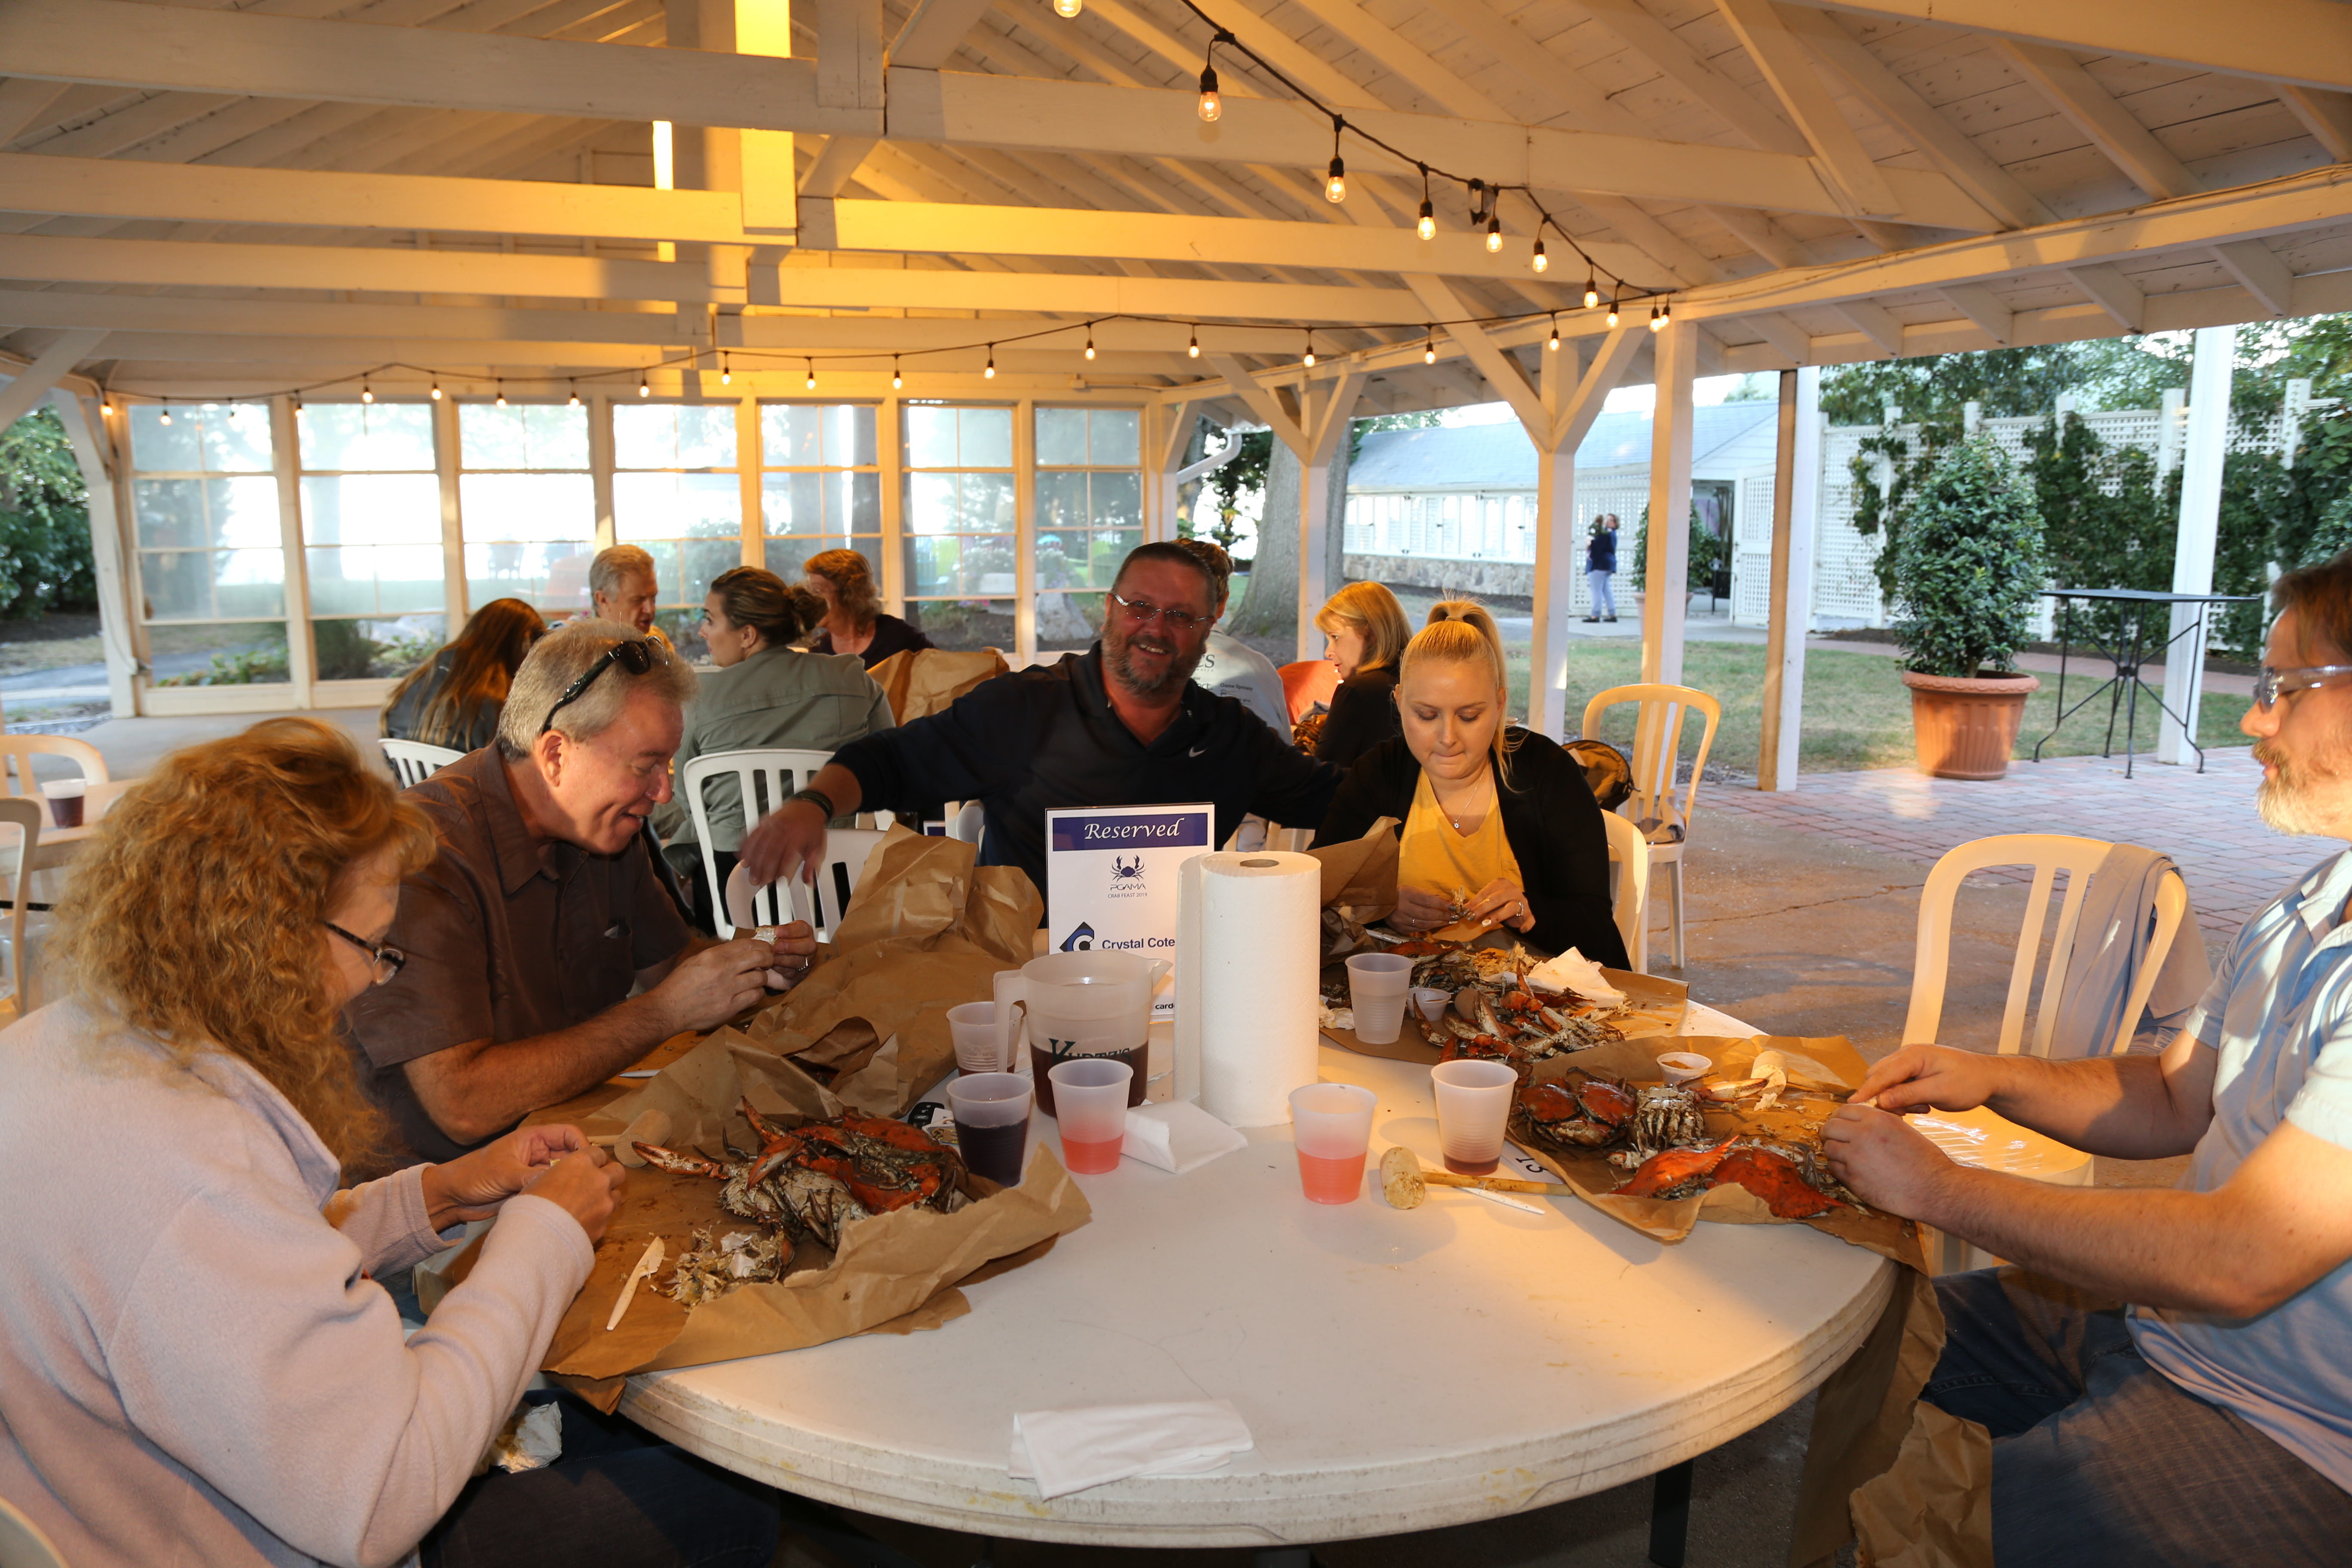 Printing-and-Graphics-Association-crab-feast-2019-kurtz-beach-IMG 1495